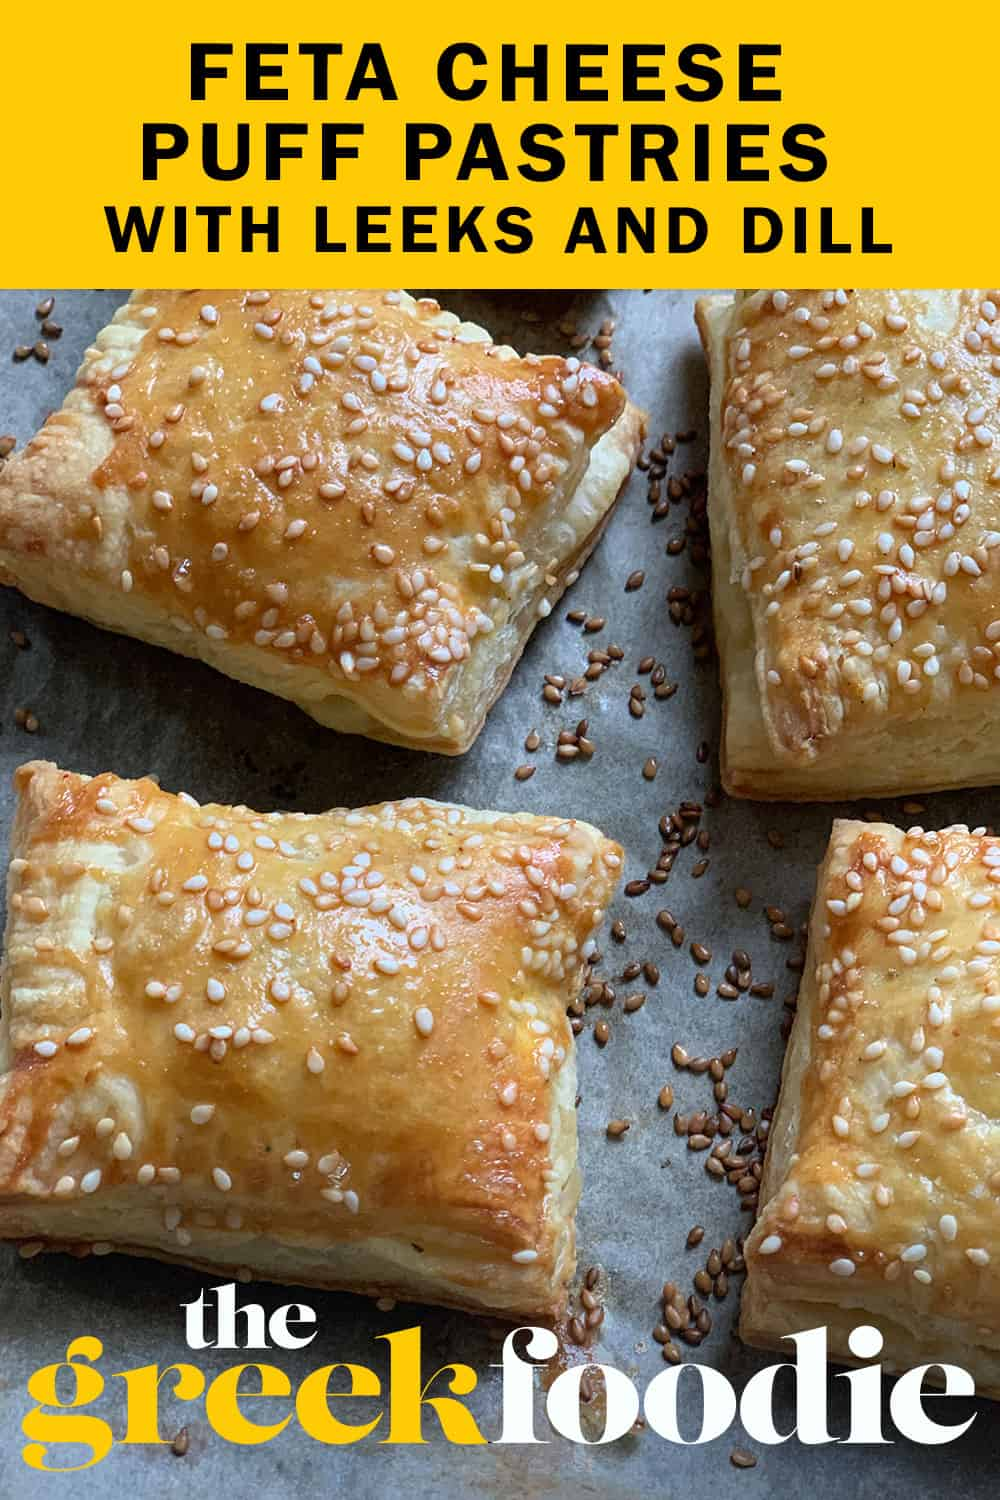 Feta Cheese Puff Pastries With Leeks And Dill